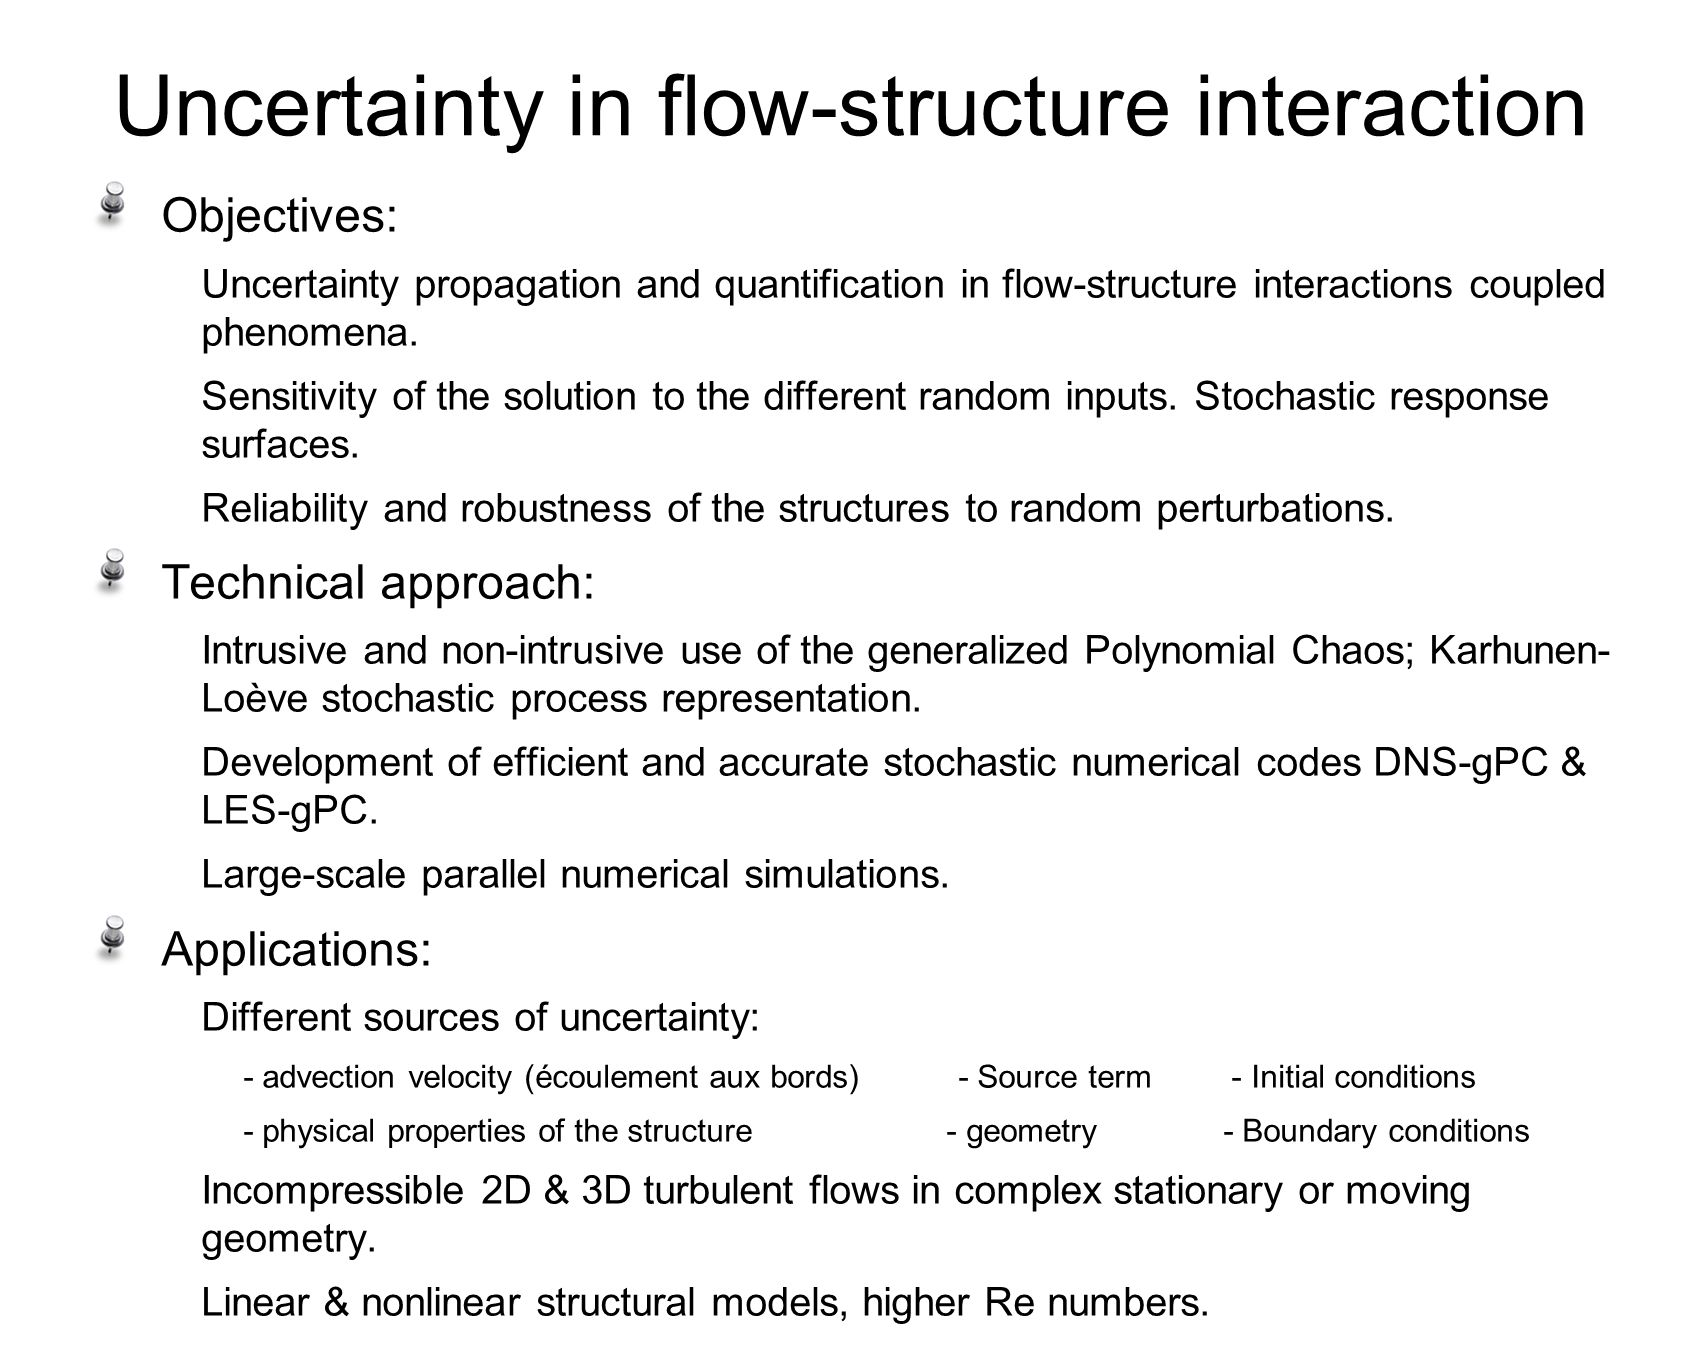 Uncertainty in flow-structure interaction